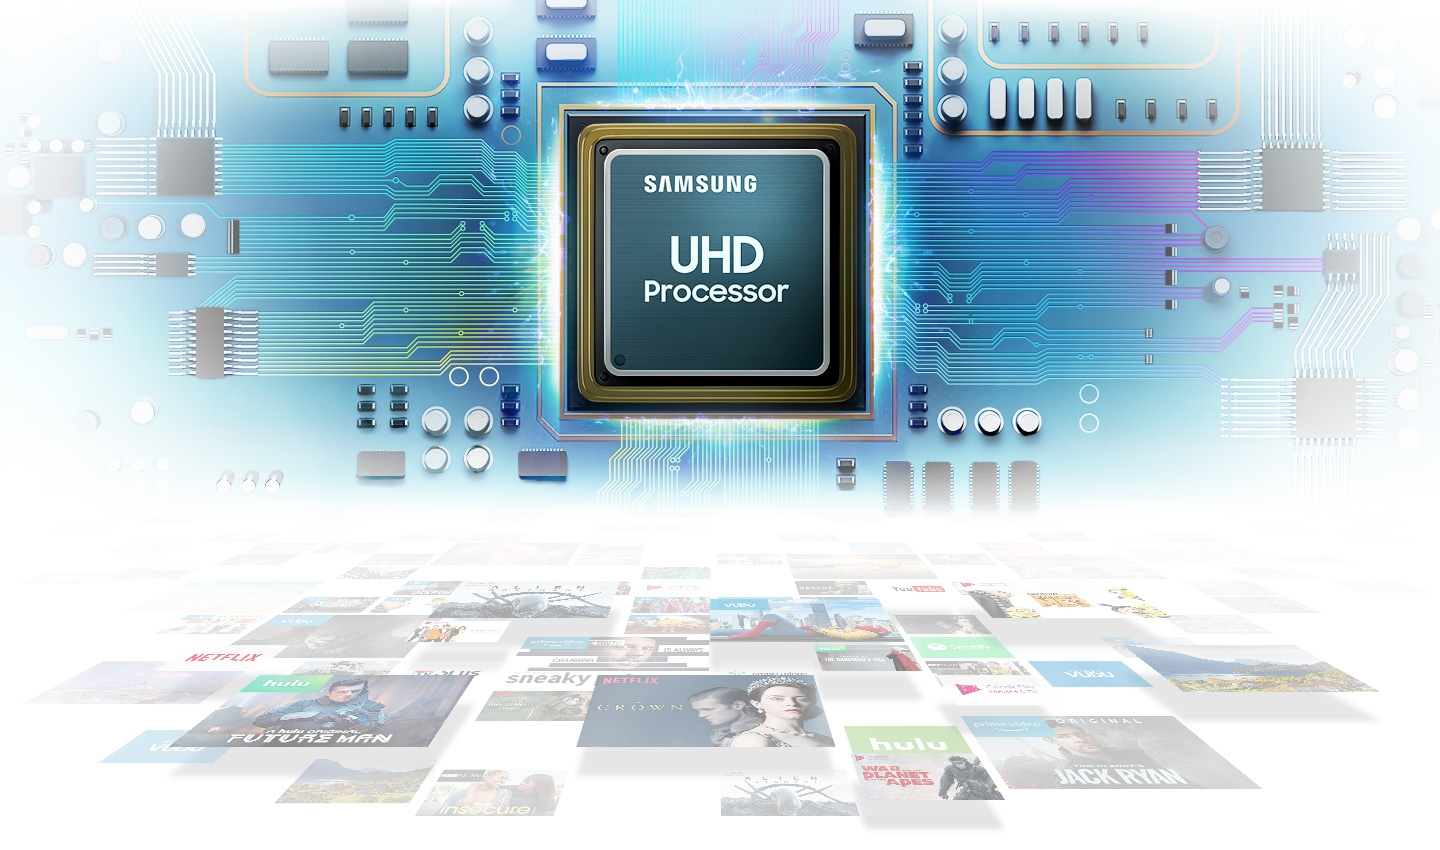 Телевизор SAMSUNG UE55RU7102 (2019г) 4K UHD 3840 x 2160, SMART TV, PQI (Picture Quality Index) 1400, HDR 10+, DVB-T2C - фото UHD Processor,powerful picture quality